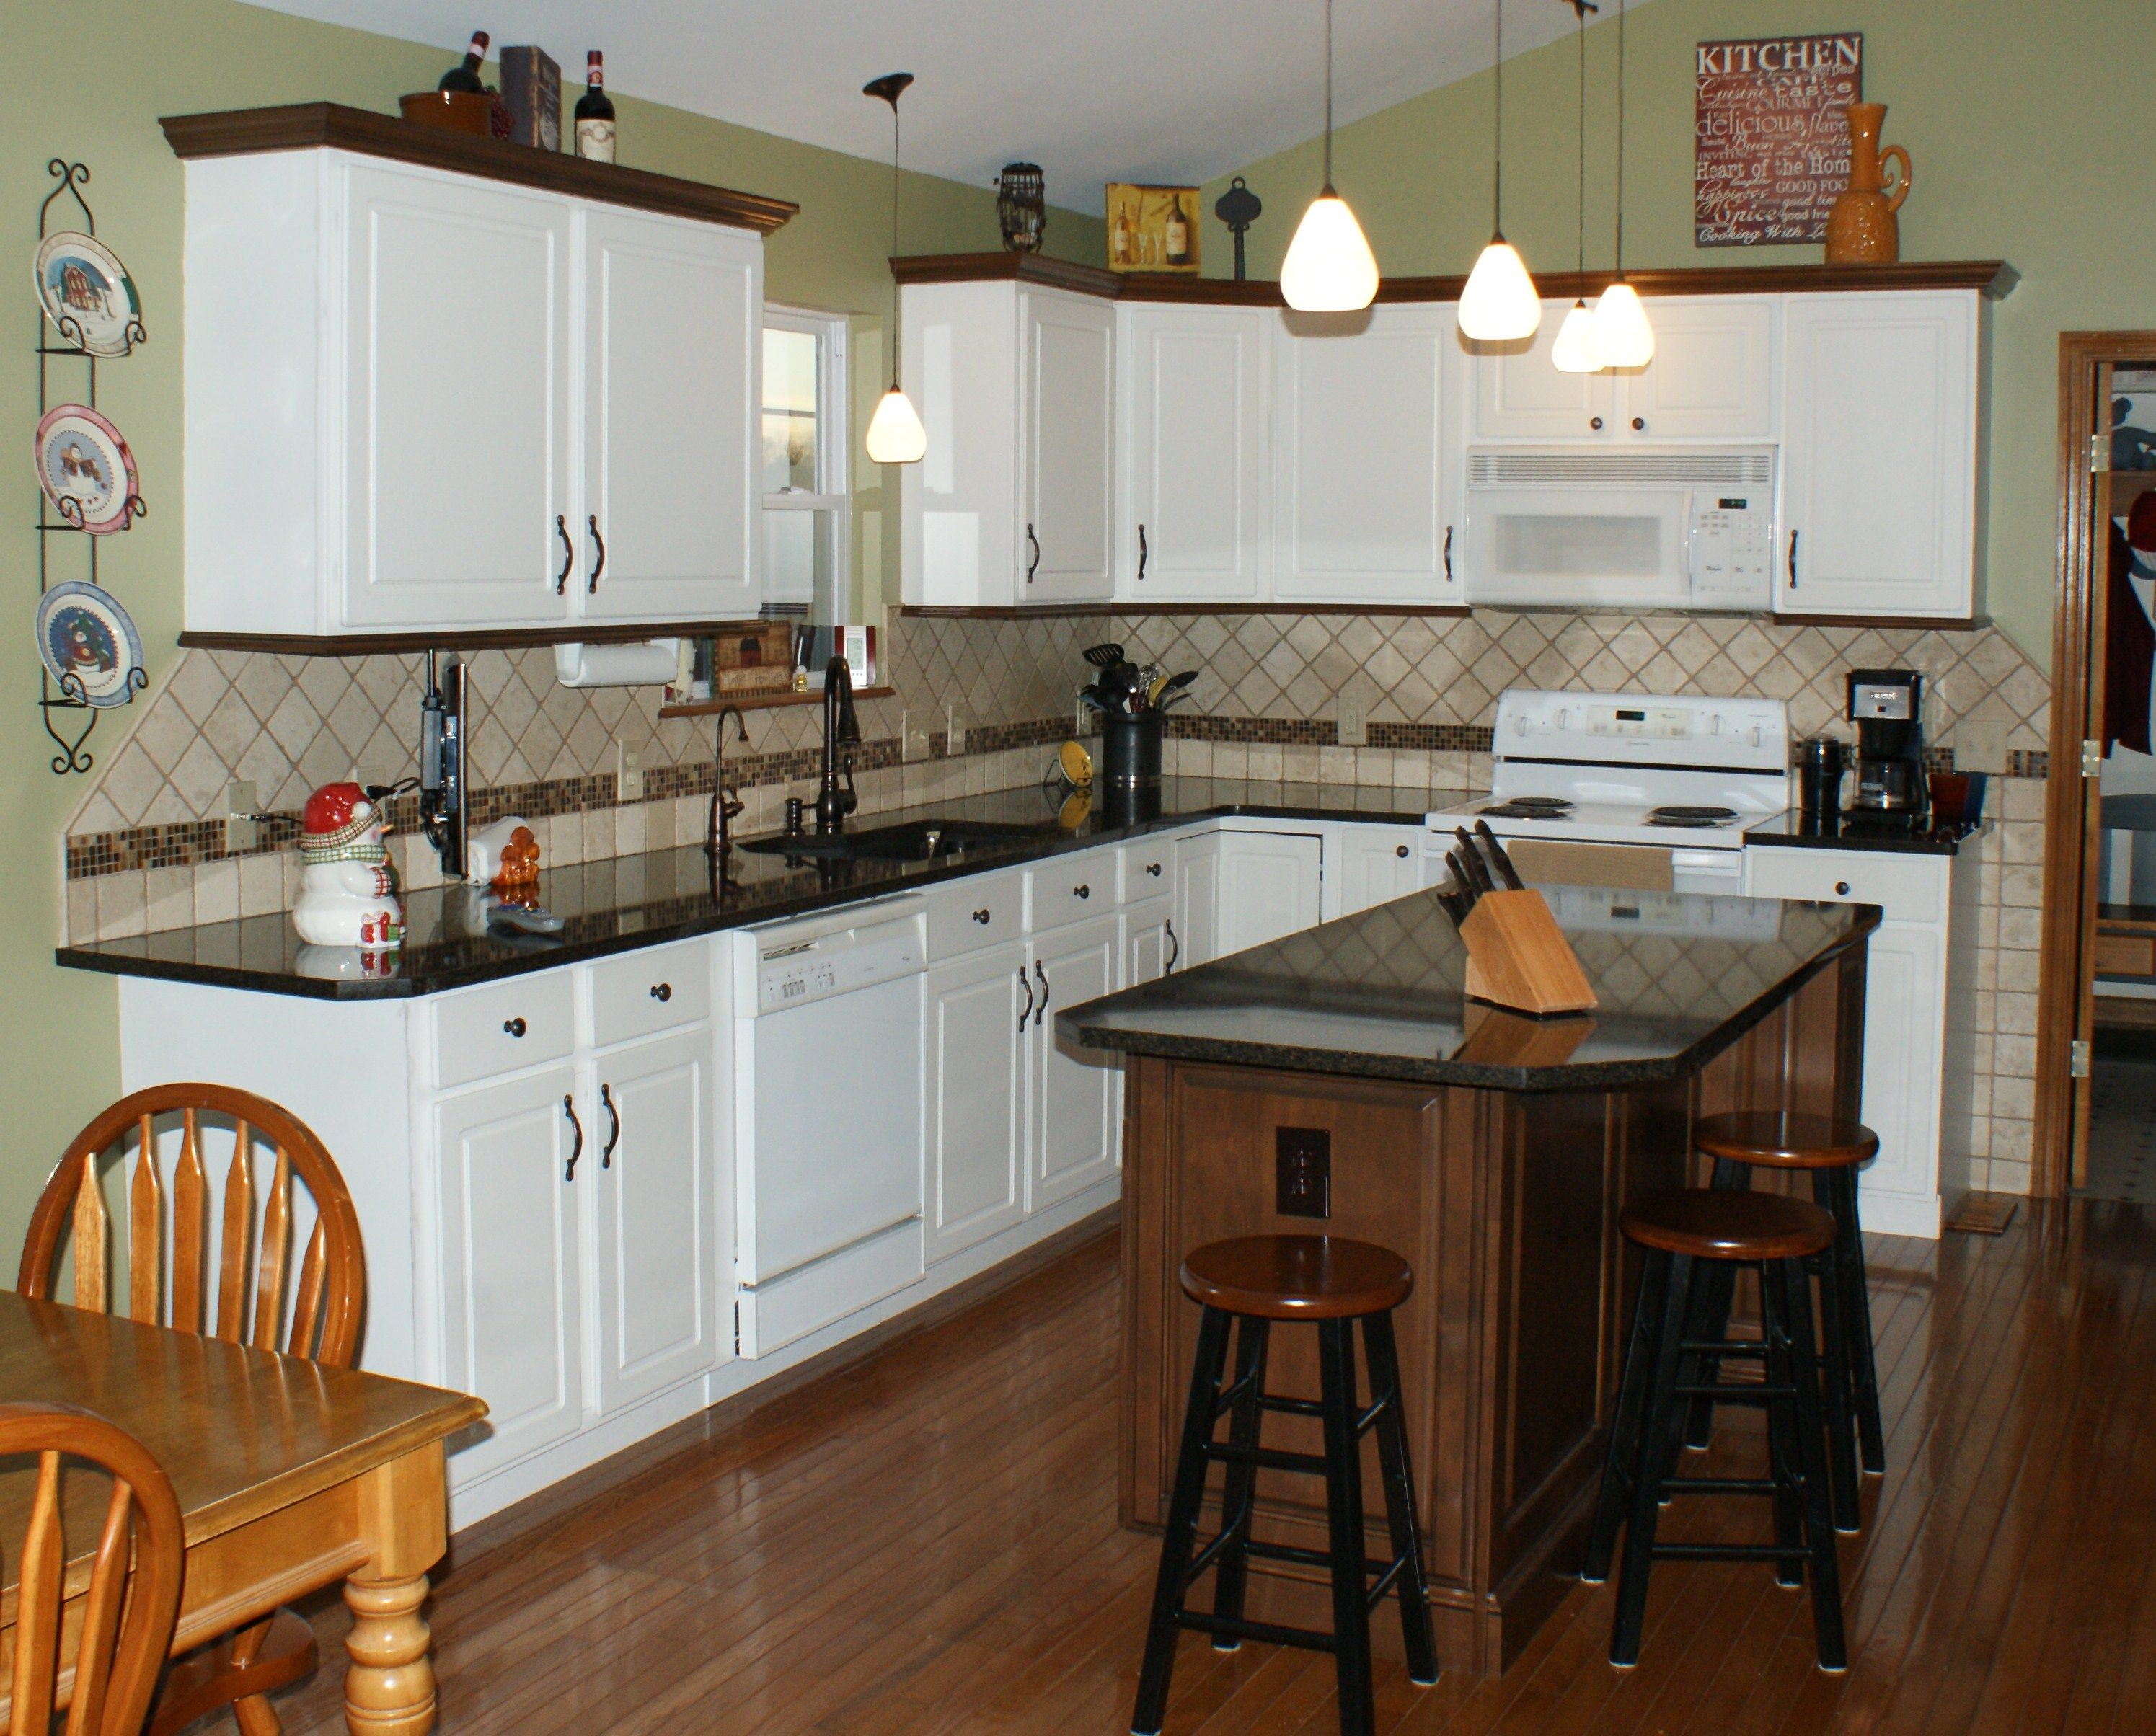 average kitchen diy refacing cost the how splendid prices reface brookhaven ideas majestic cabinet looking to much does cabinets